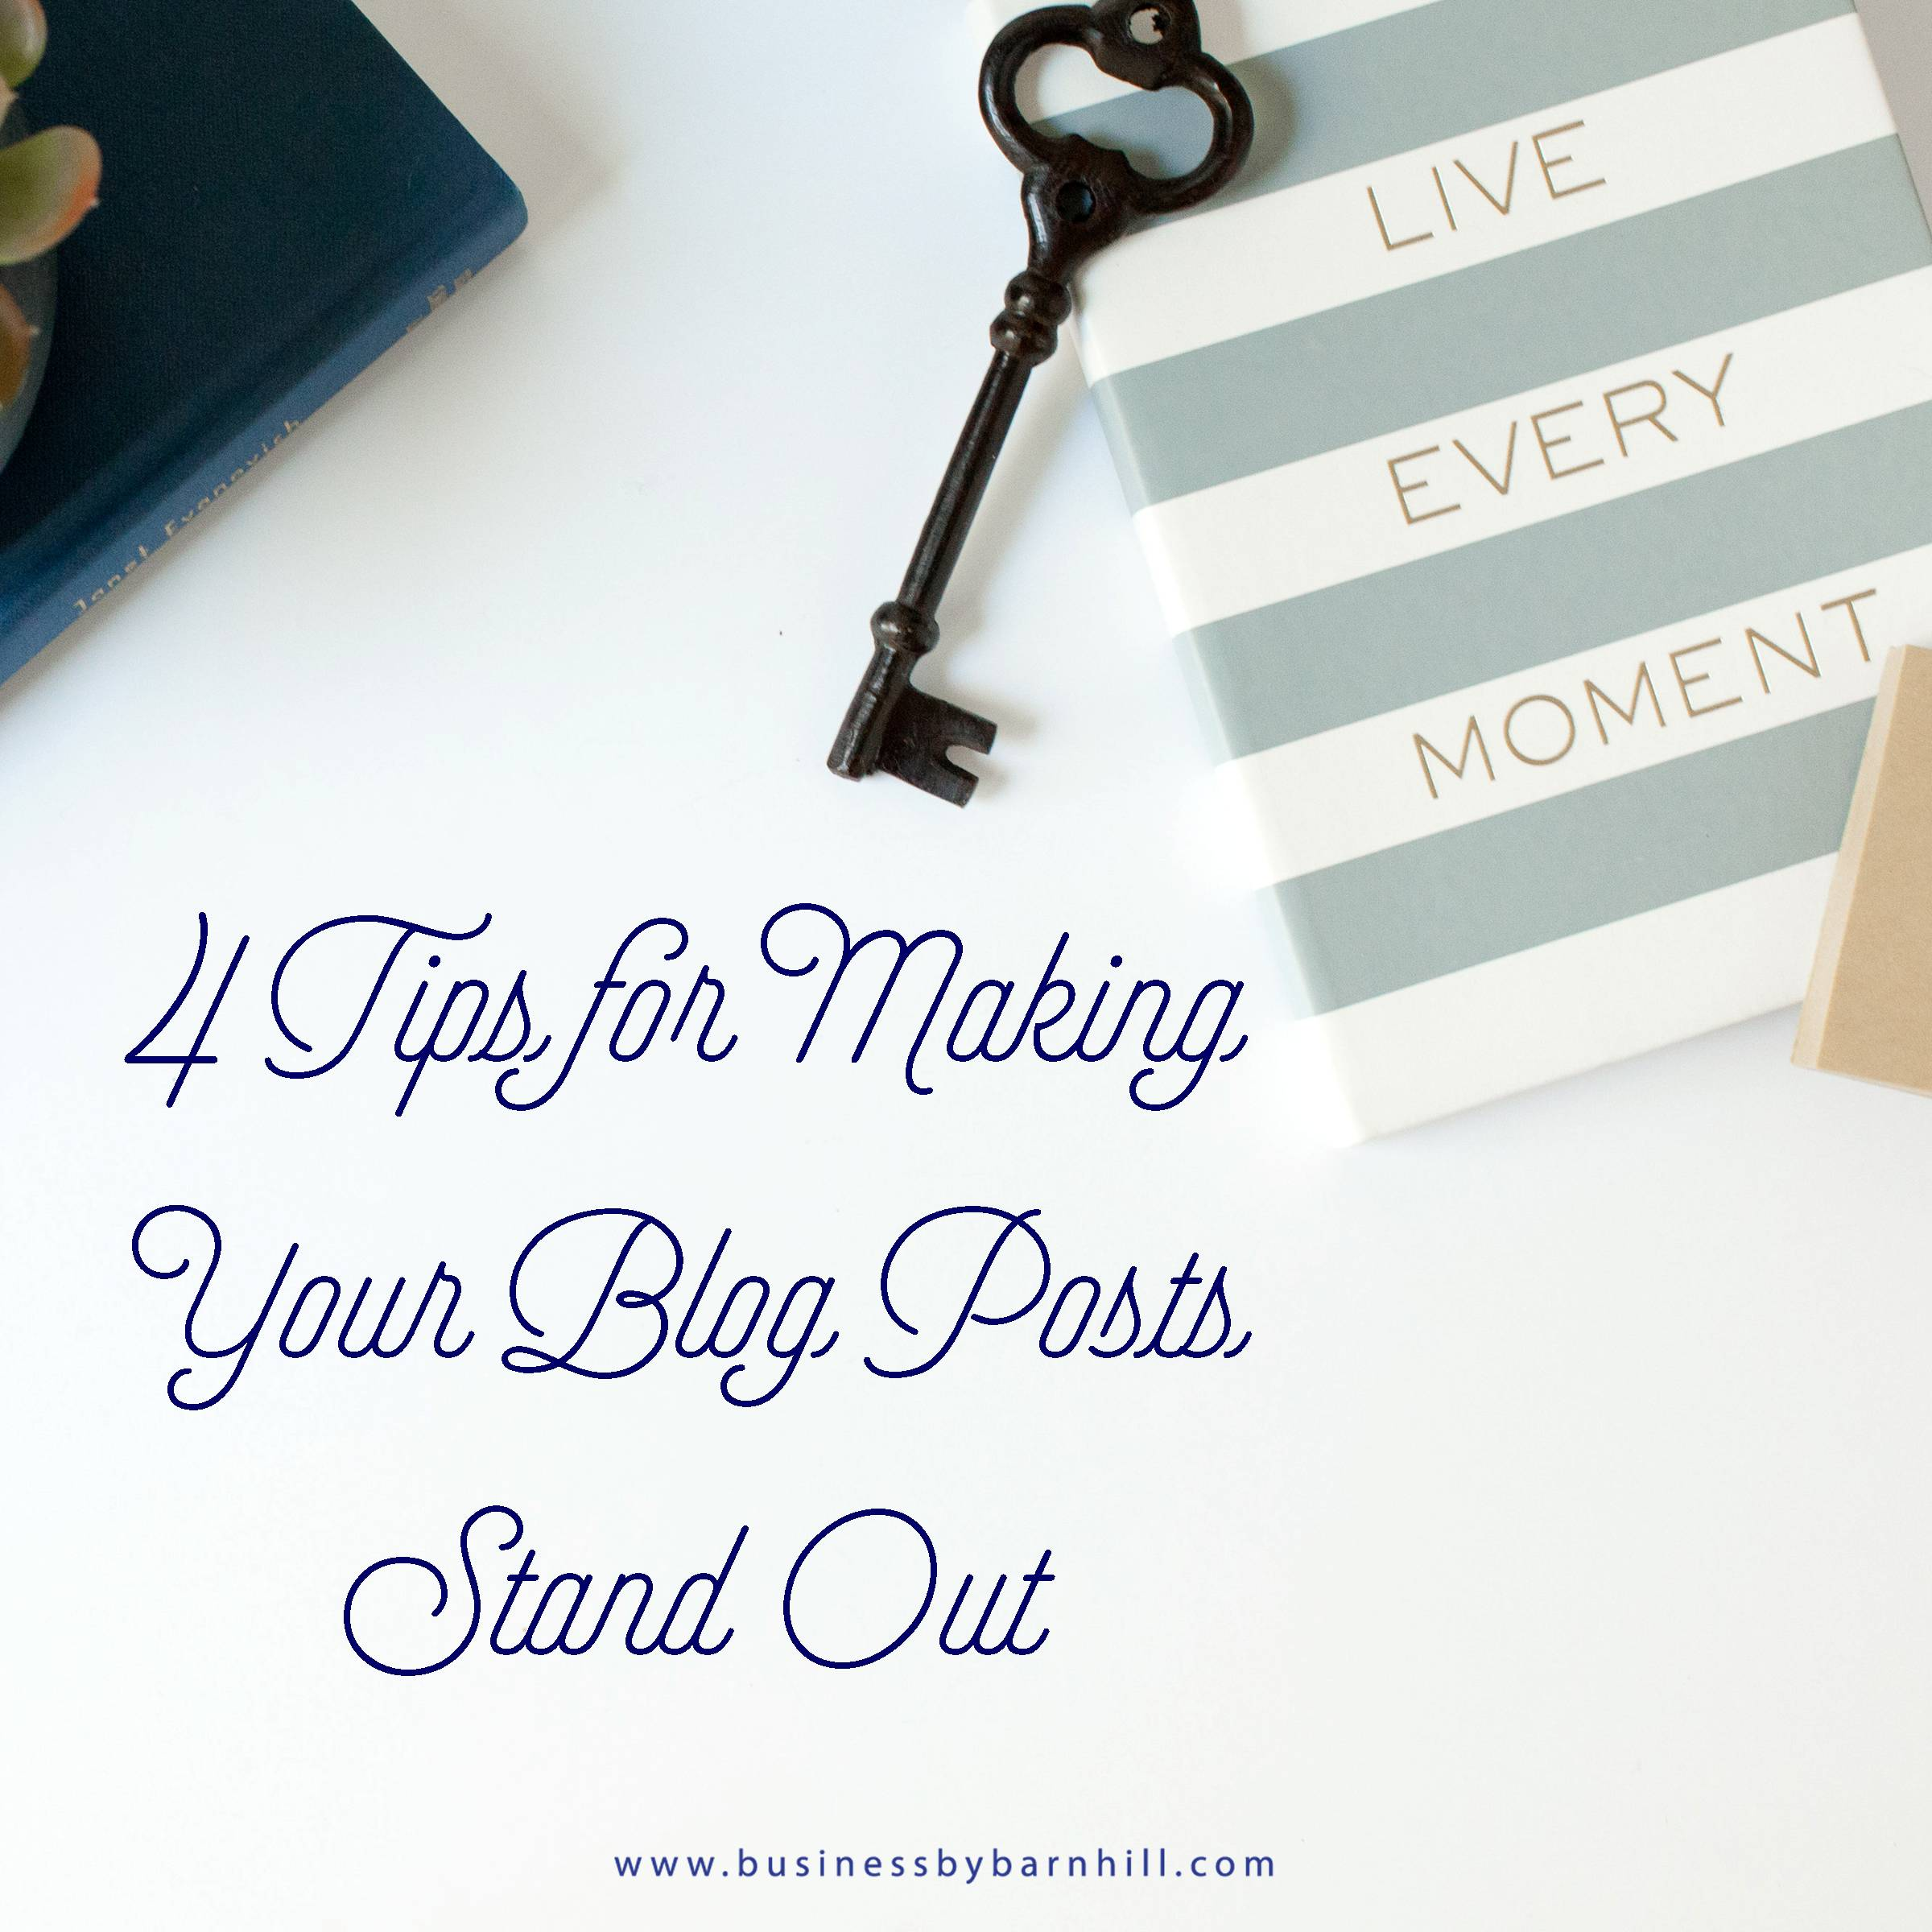 business by barnhill 4 tips for making yoru blog posts stand out.jpg